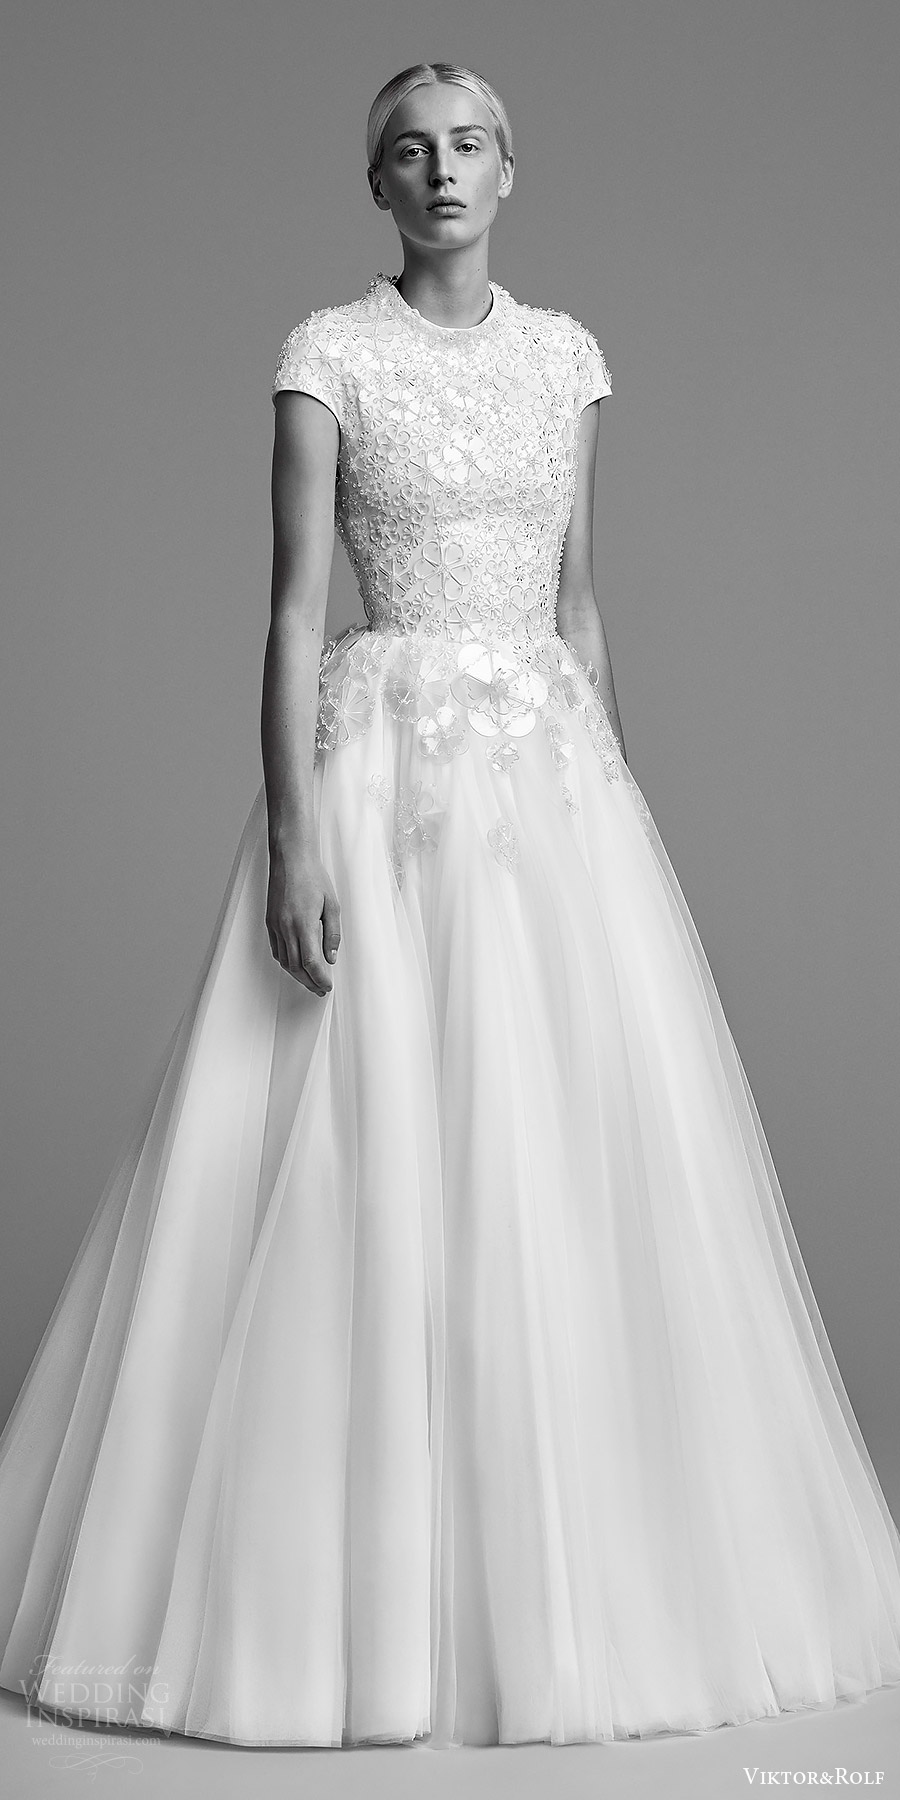 Viktor And Rolf Fall 2018 Bridal Cap Sleeves Jewel Neck Embellished Bodice A Line Wedding Dress